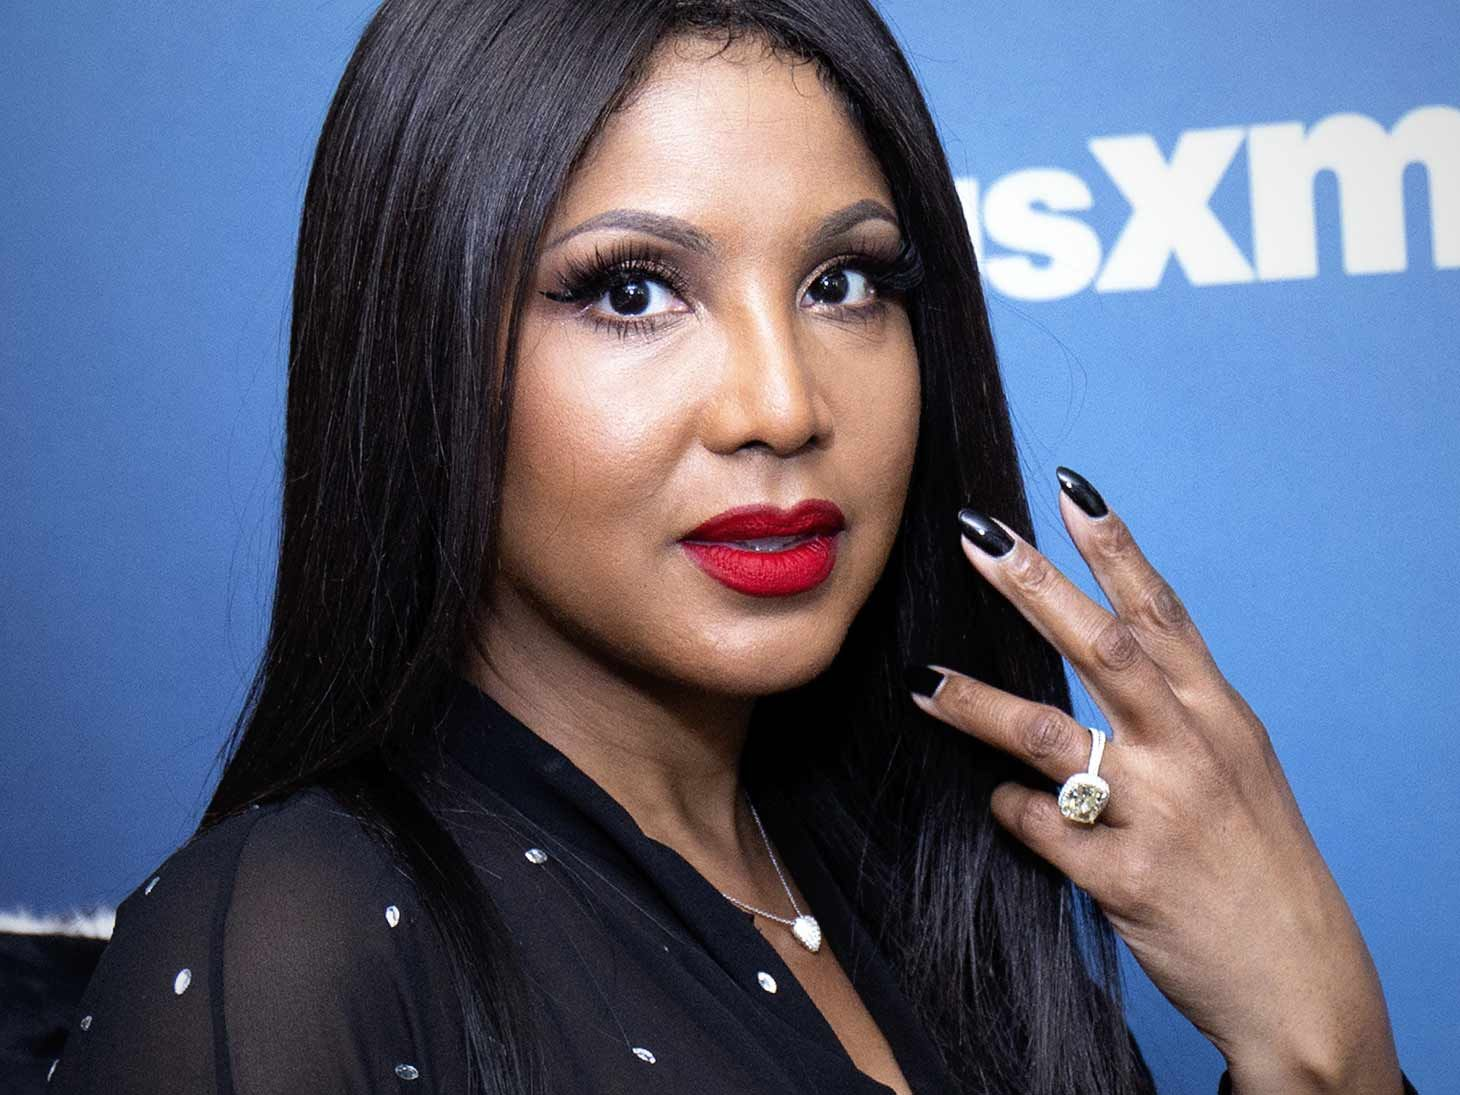 toni-braxton-proudly-flaunts-her-beach-body-check-out-her-flawless-figure-here